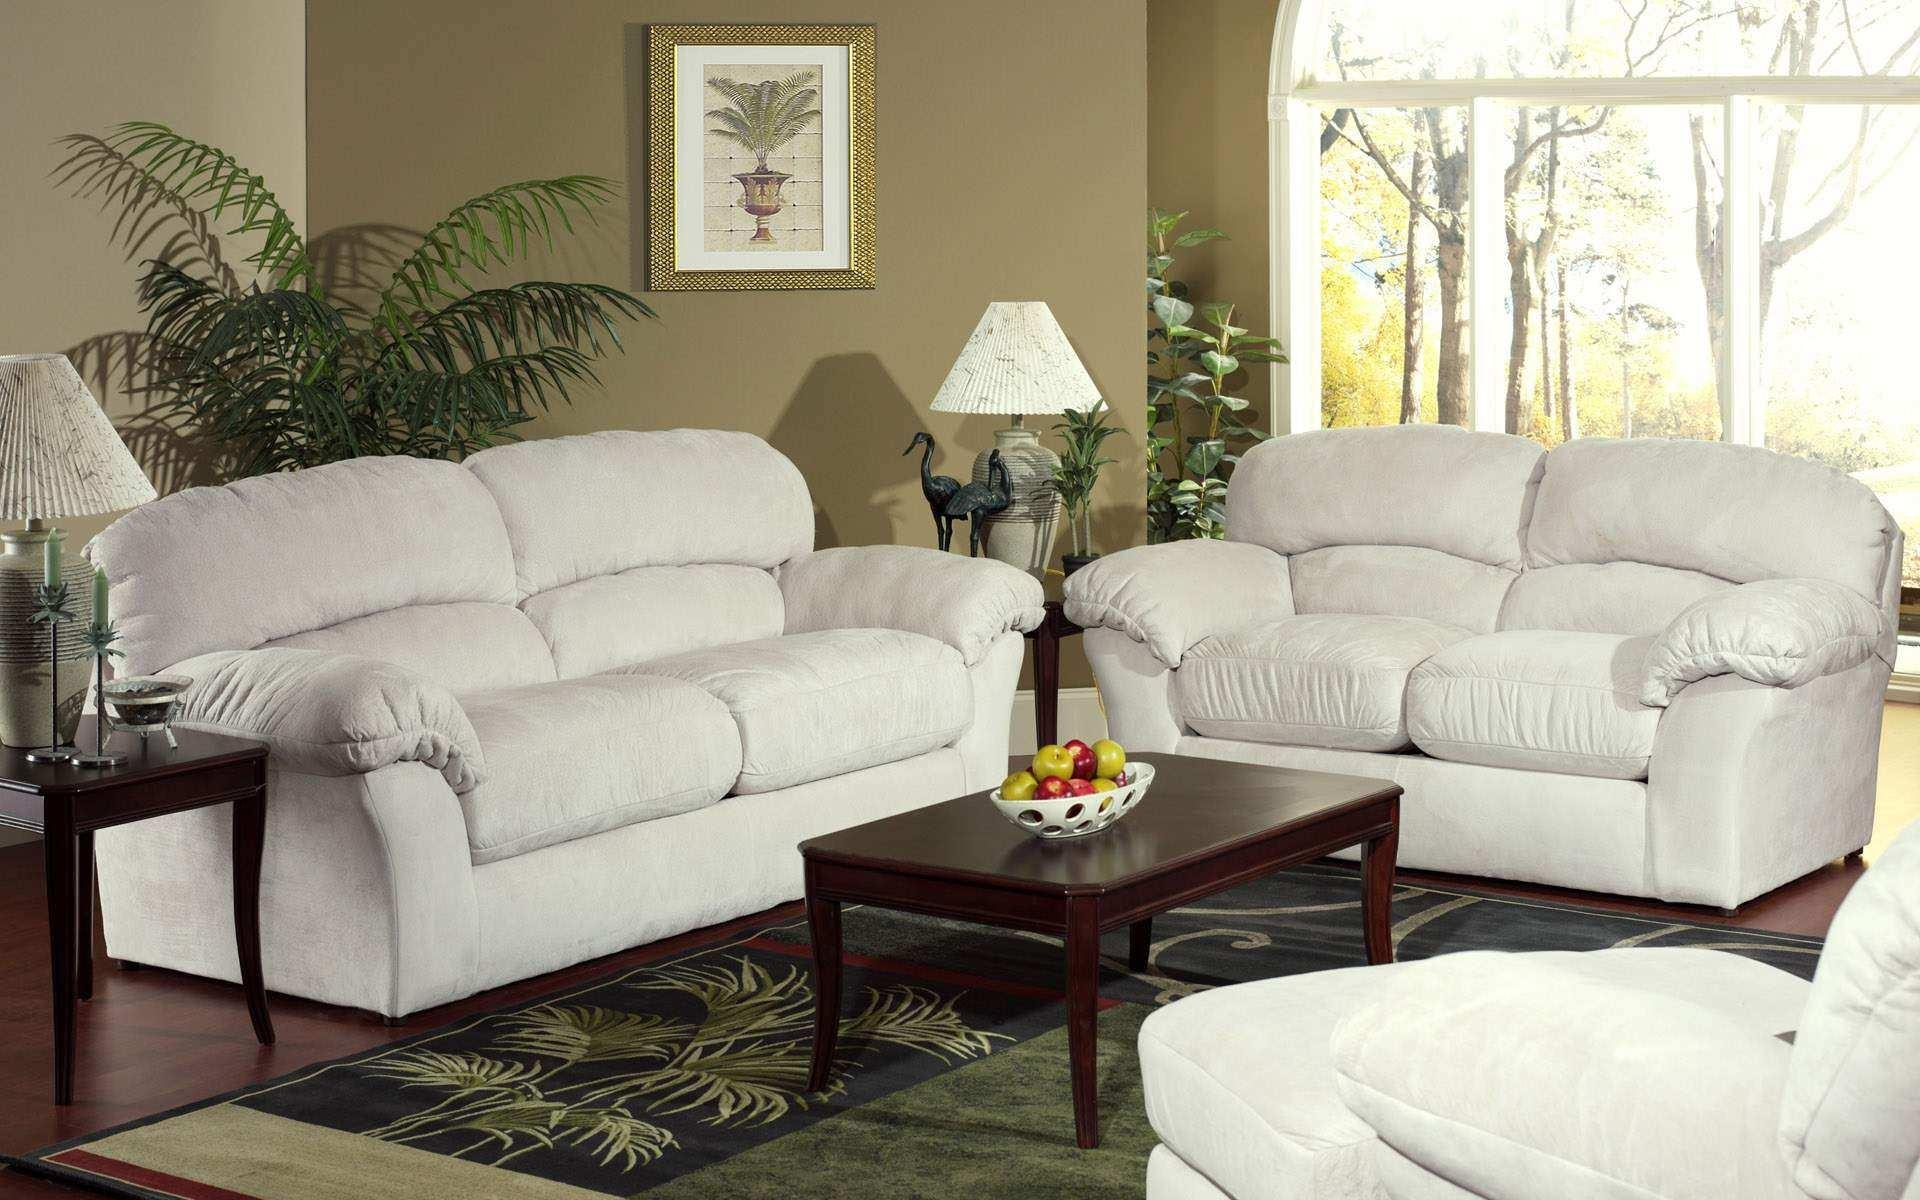 Furniture: Beauty Sofa In Living Room Living Room Furniture Throughout Living Room Sofa Chairs (View 17 of 20)